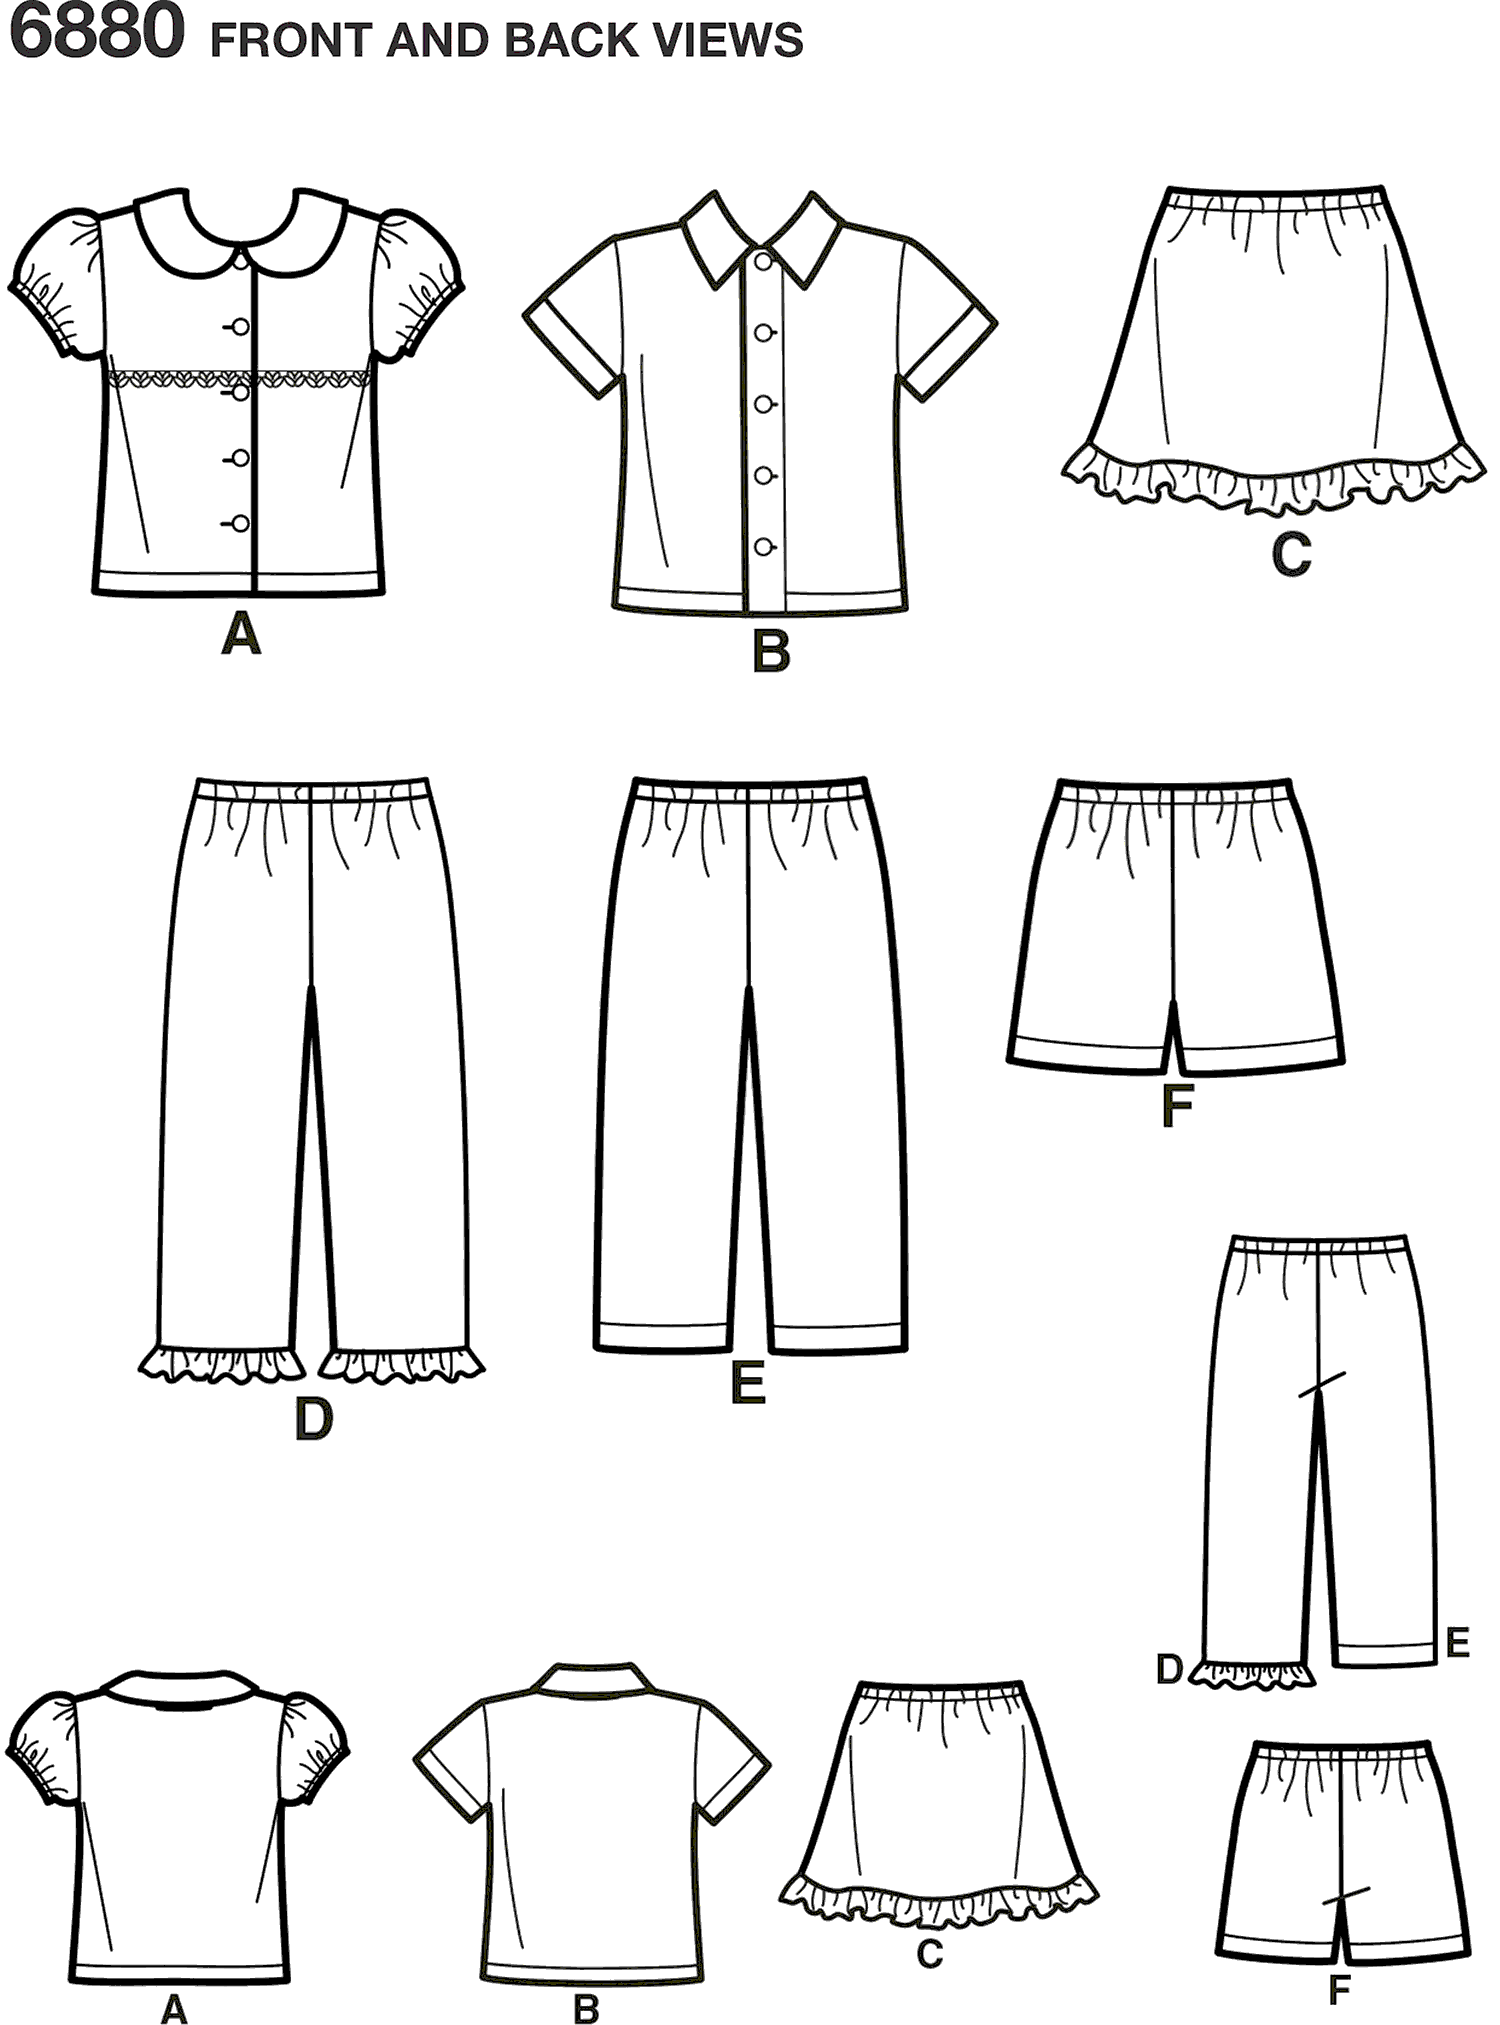 New Look Pattern 6880 Toddler Separates Line Art From Patternsandplains.com